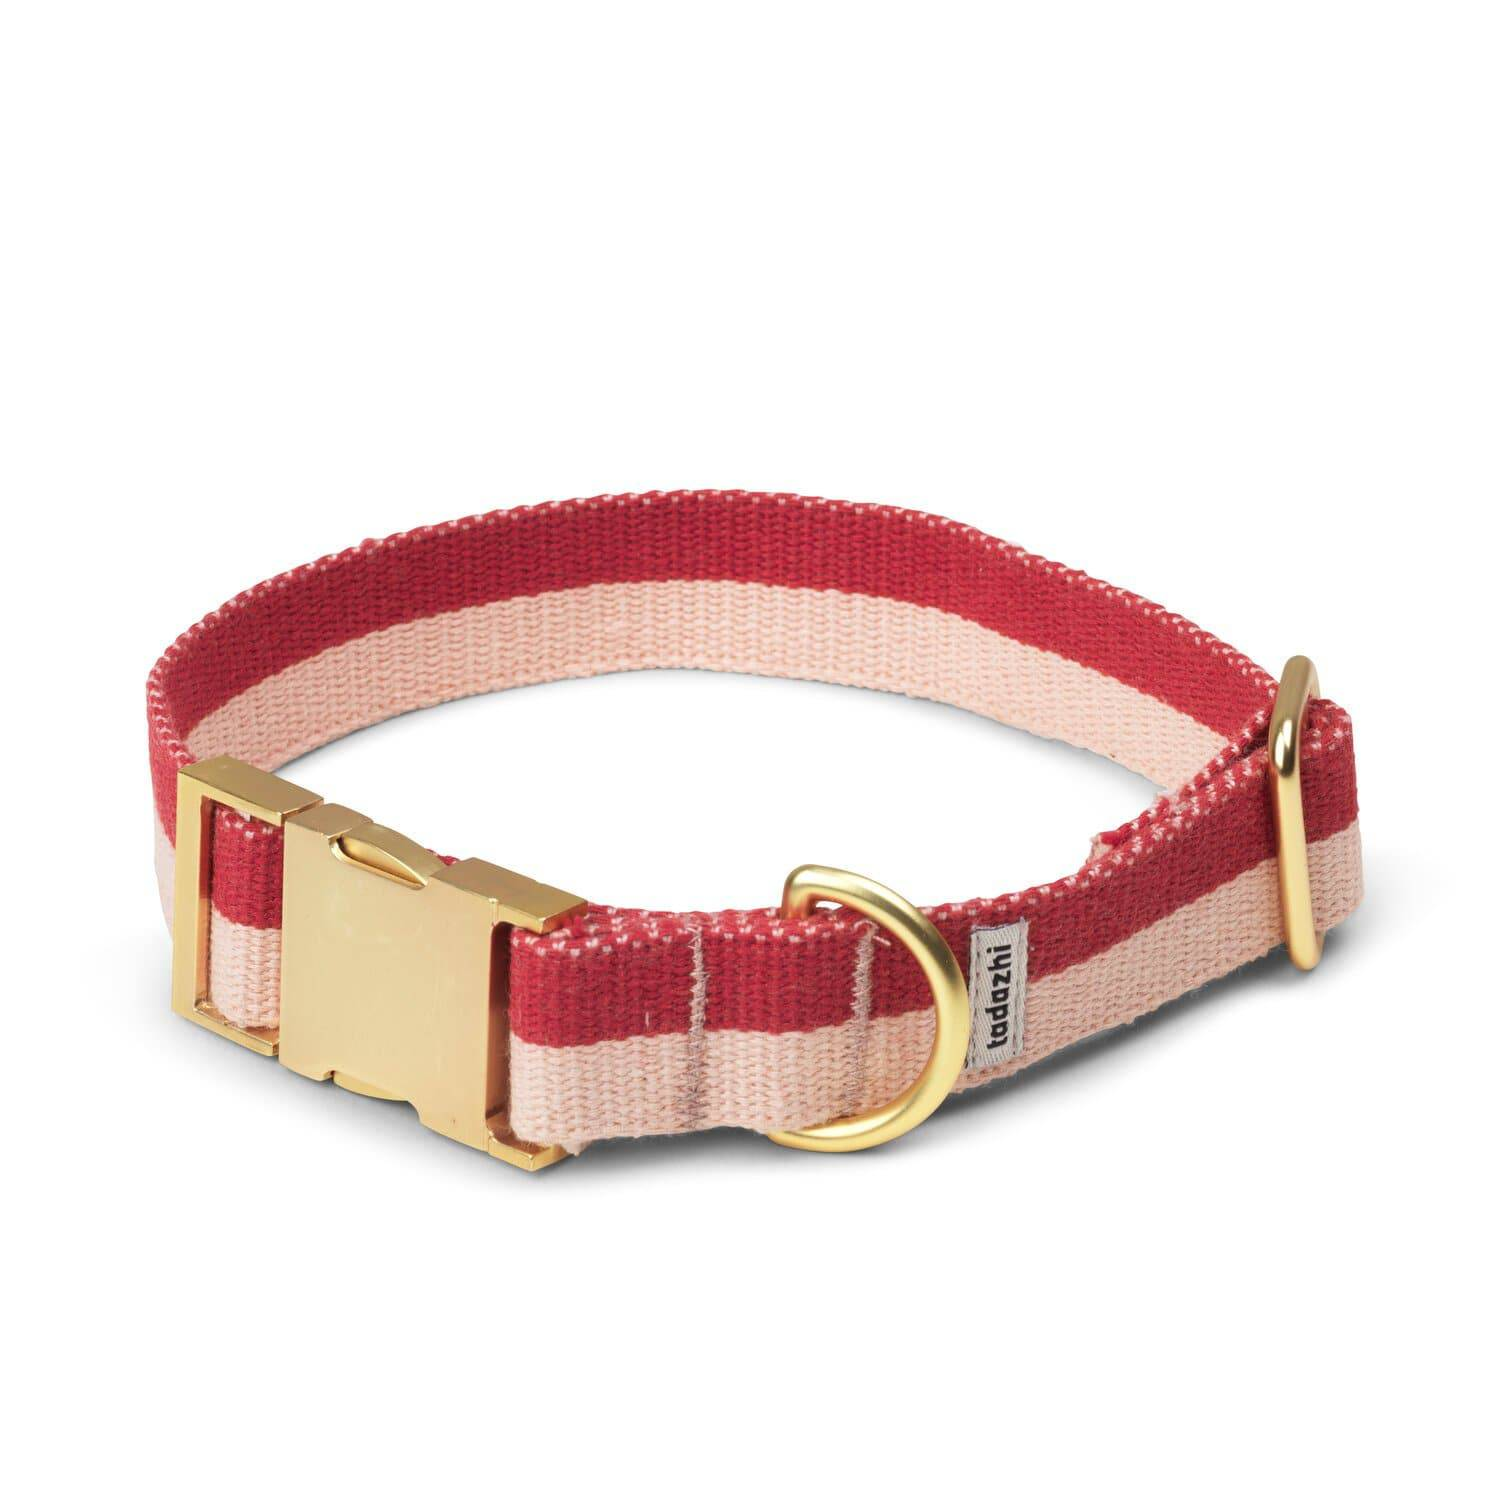 Red & Blush Pink - Cotton webbing Collar & Brass Hardware - [Holler Brighton]